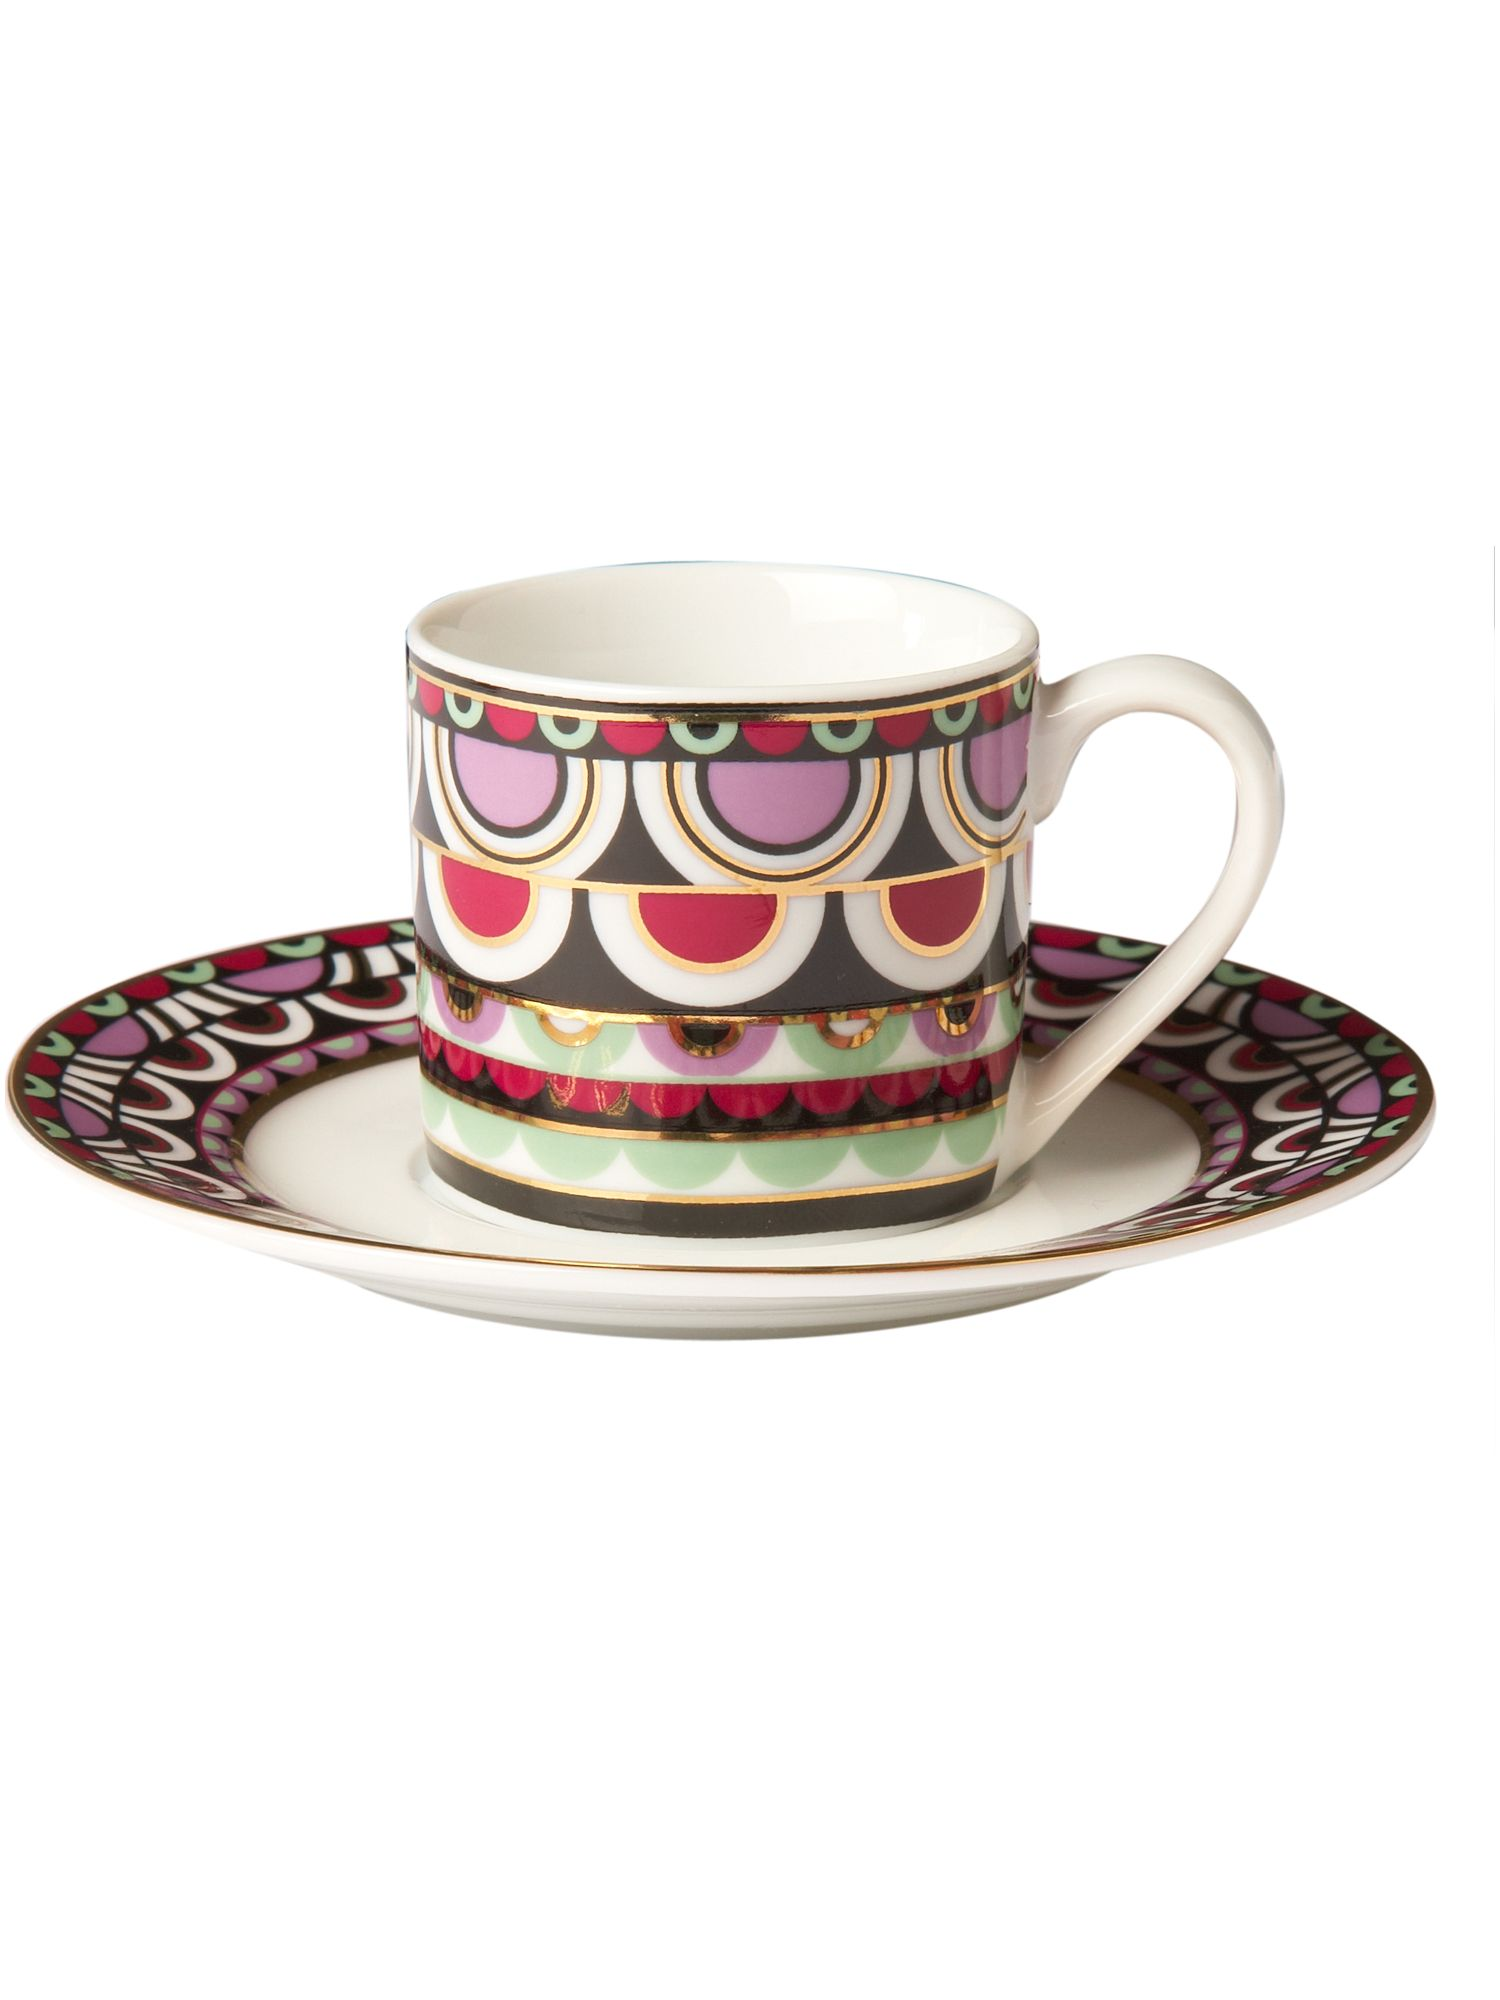 Persia Jewels espresso cup and saucer